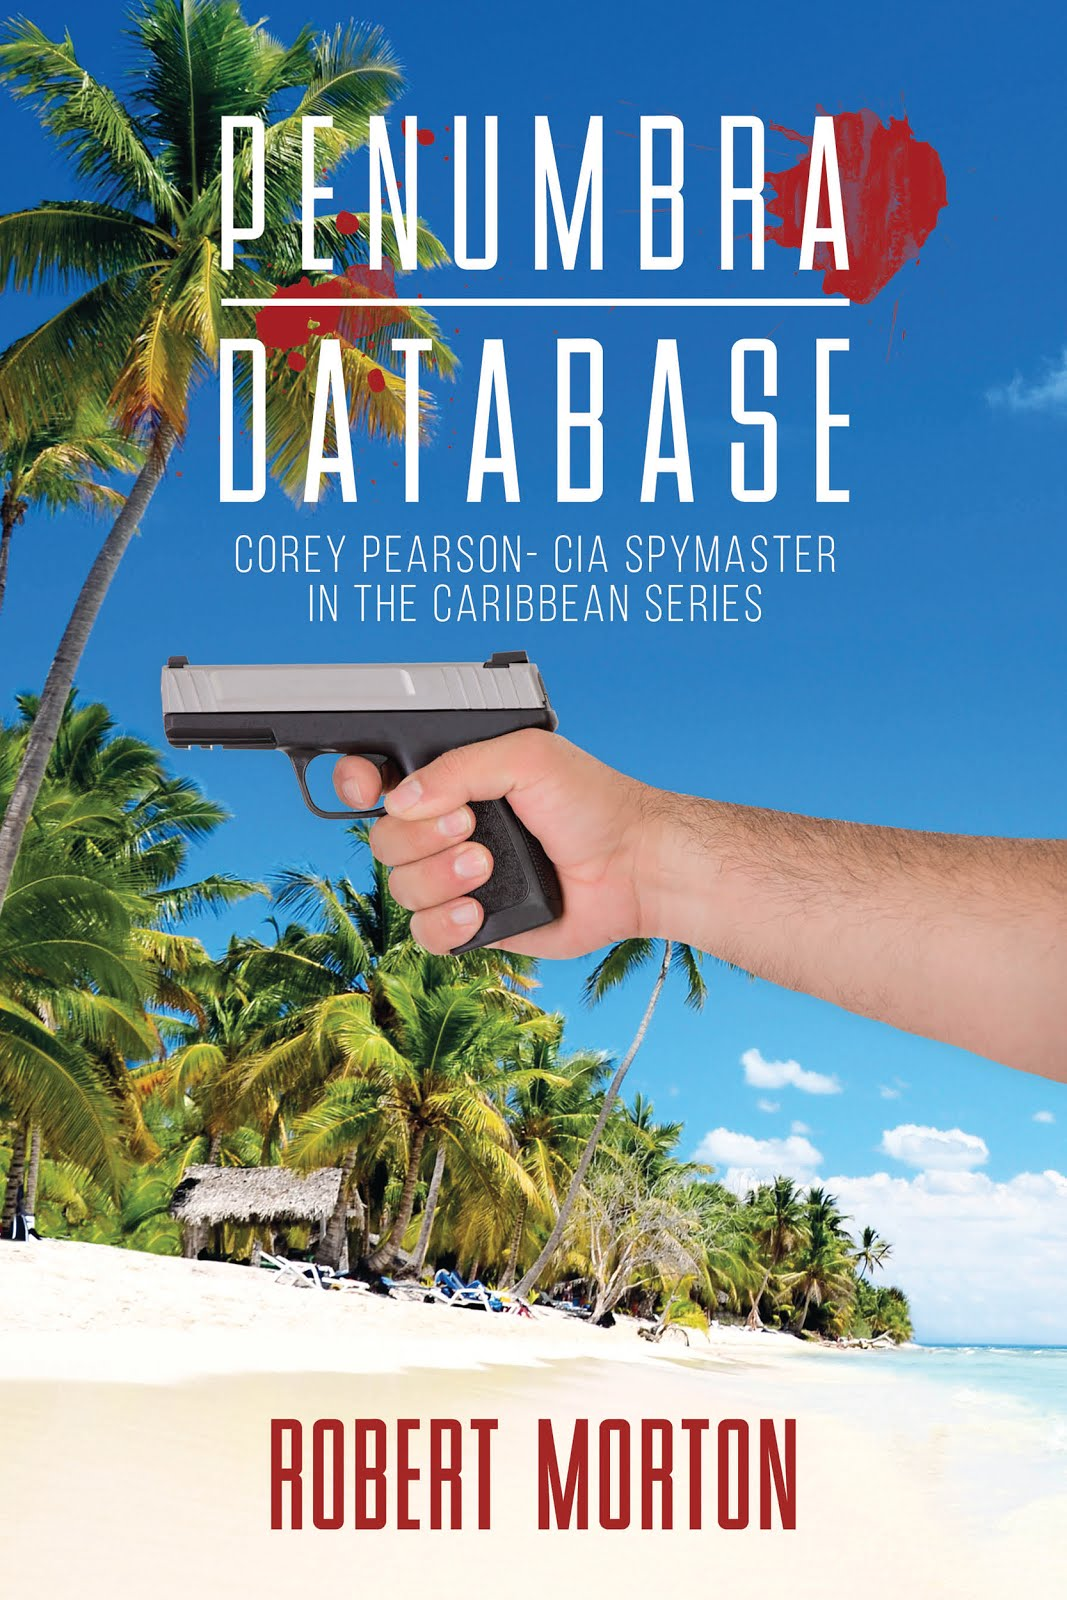 Check out this Caribbean/Florida Keys spy thriller!